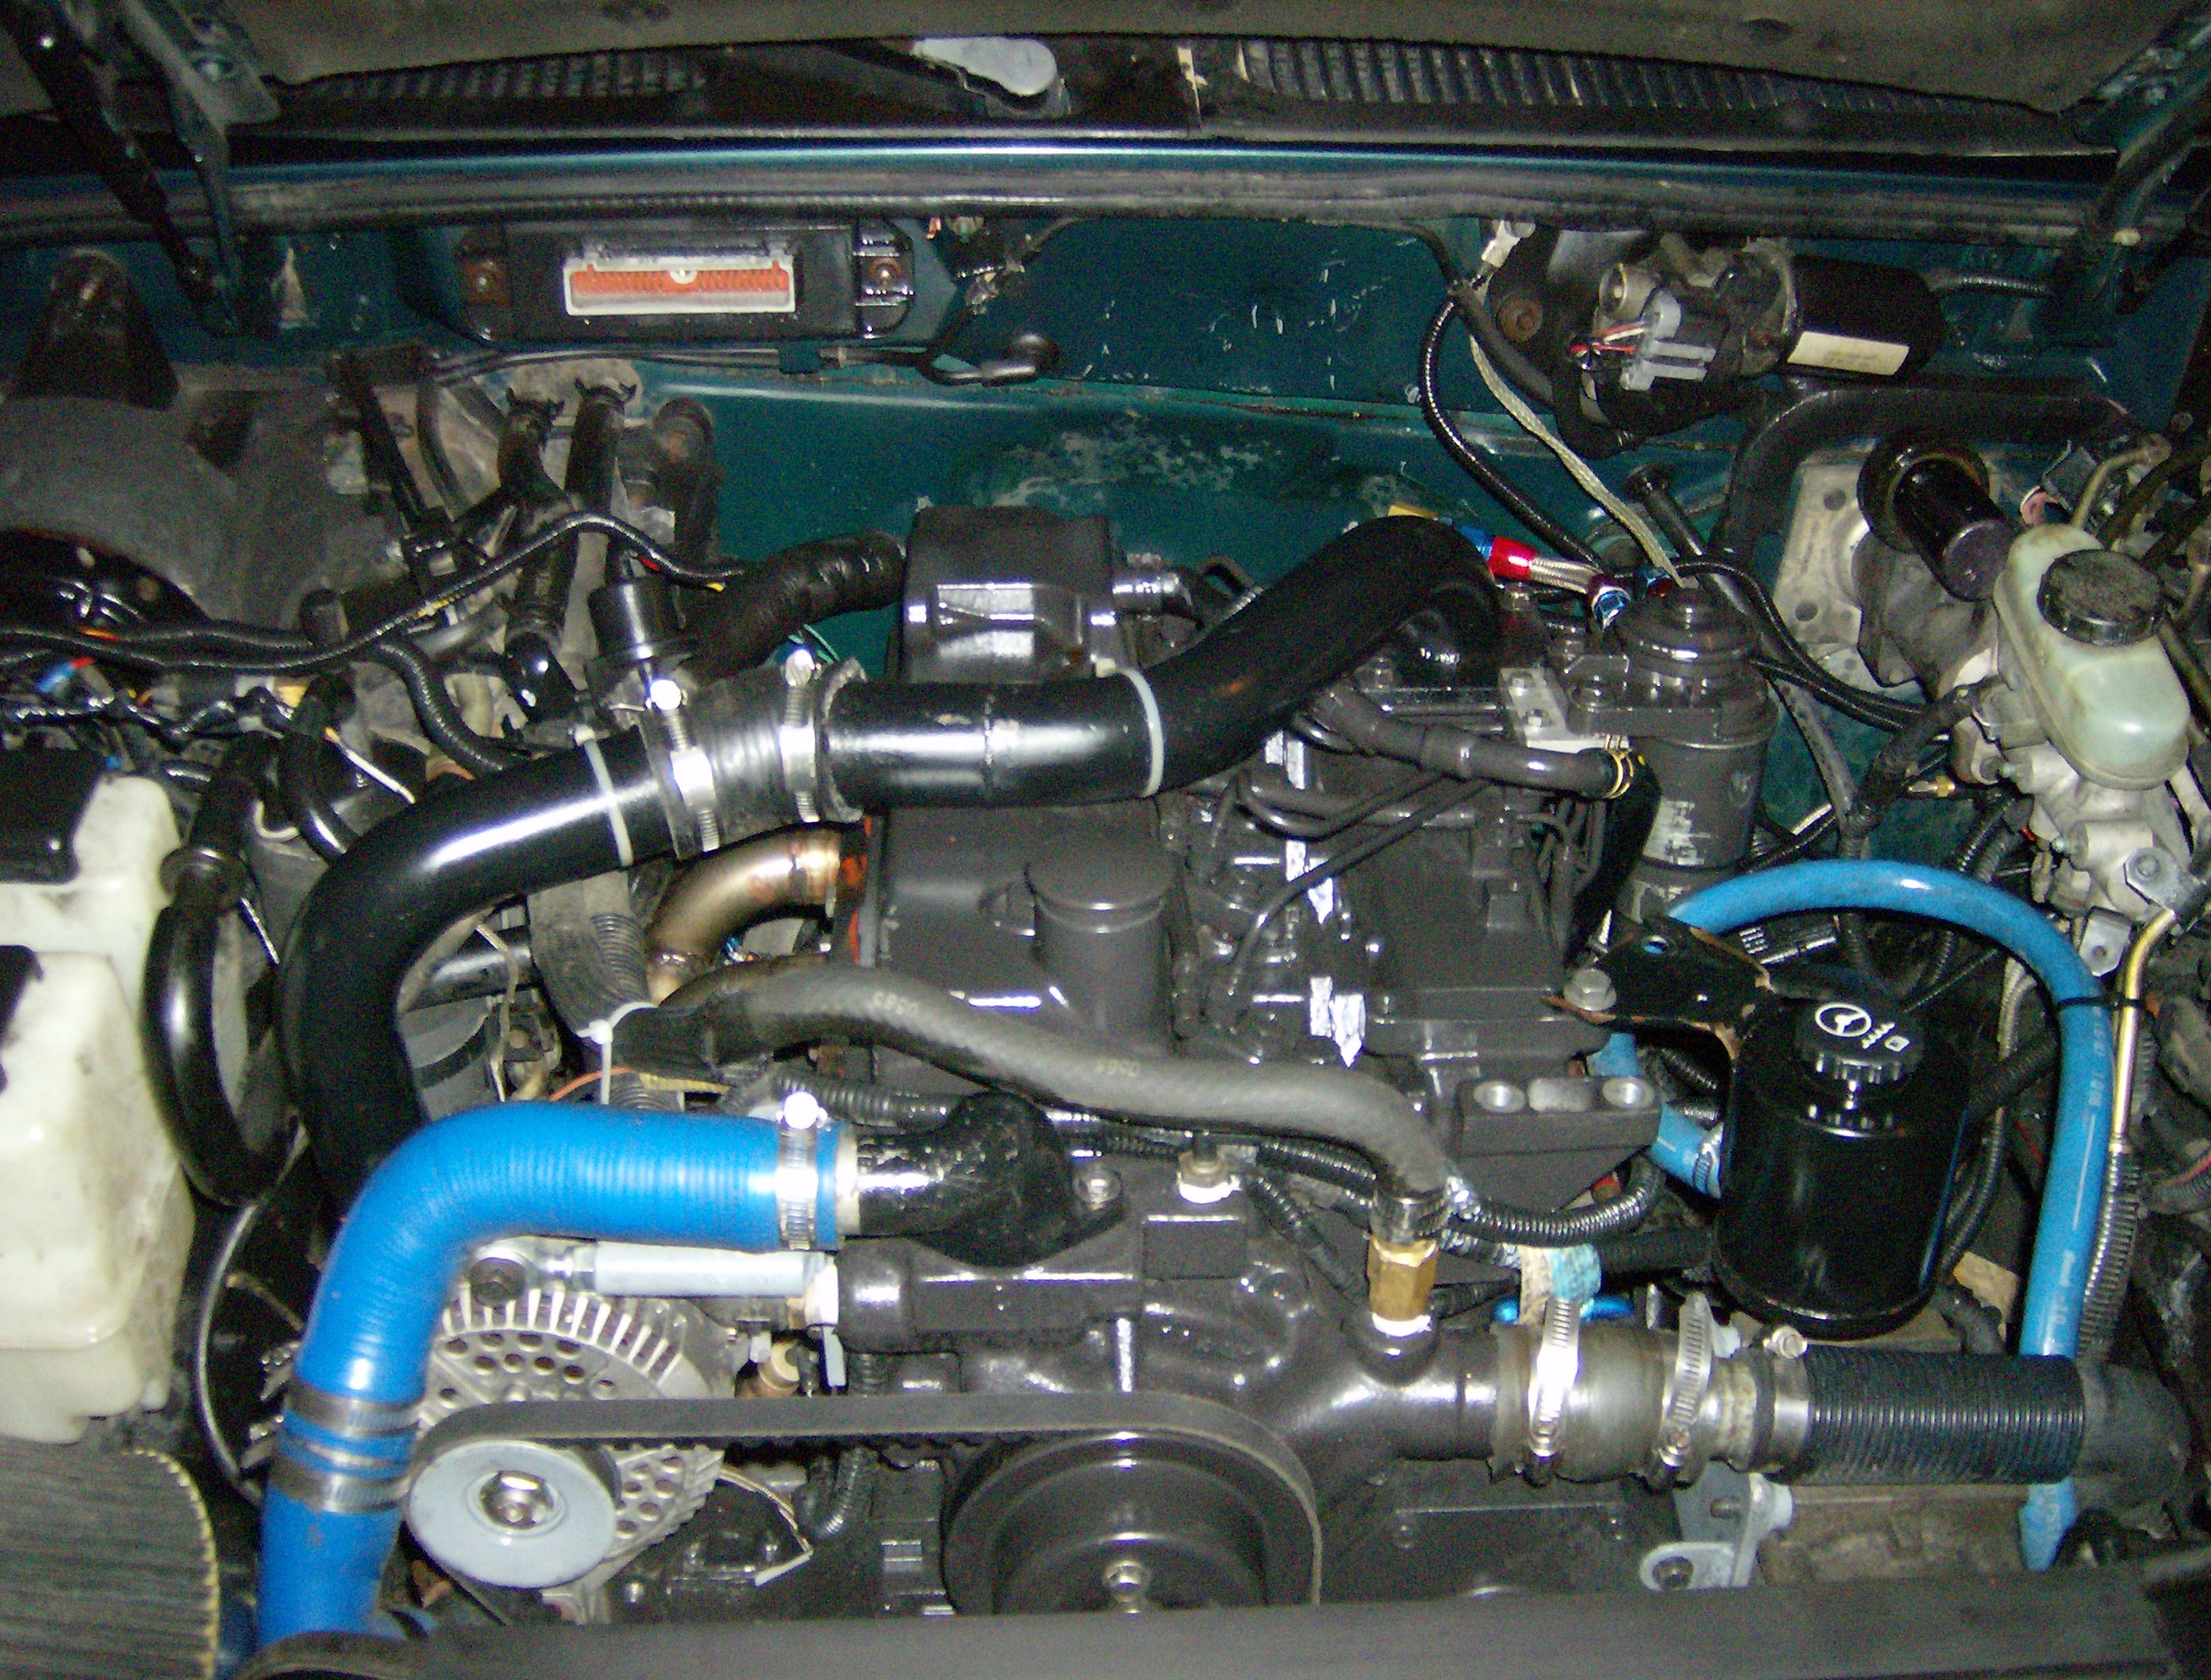 Ultra Diesel Plus Hm Sae L Angle besides Px  pressor Side Of Turbo in addition Maxresdefault as well J as well Opelinsigniasedan. on turbo diesel engine